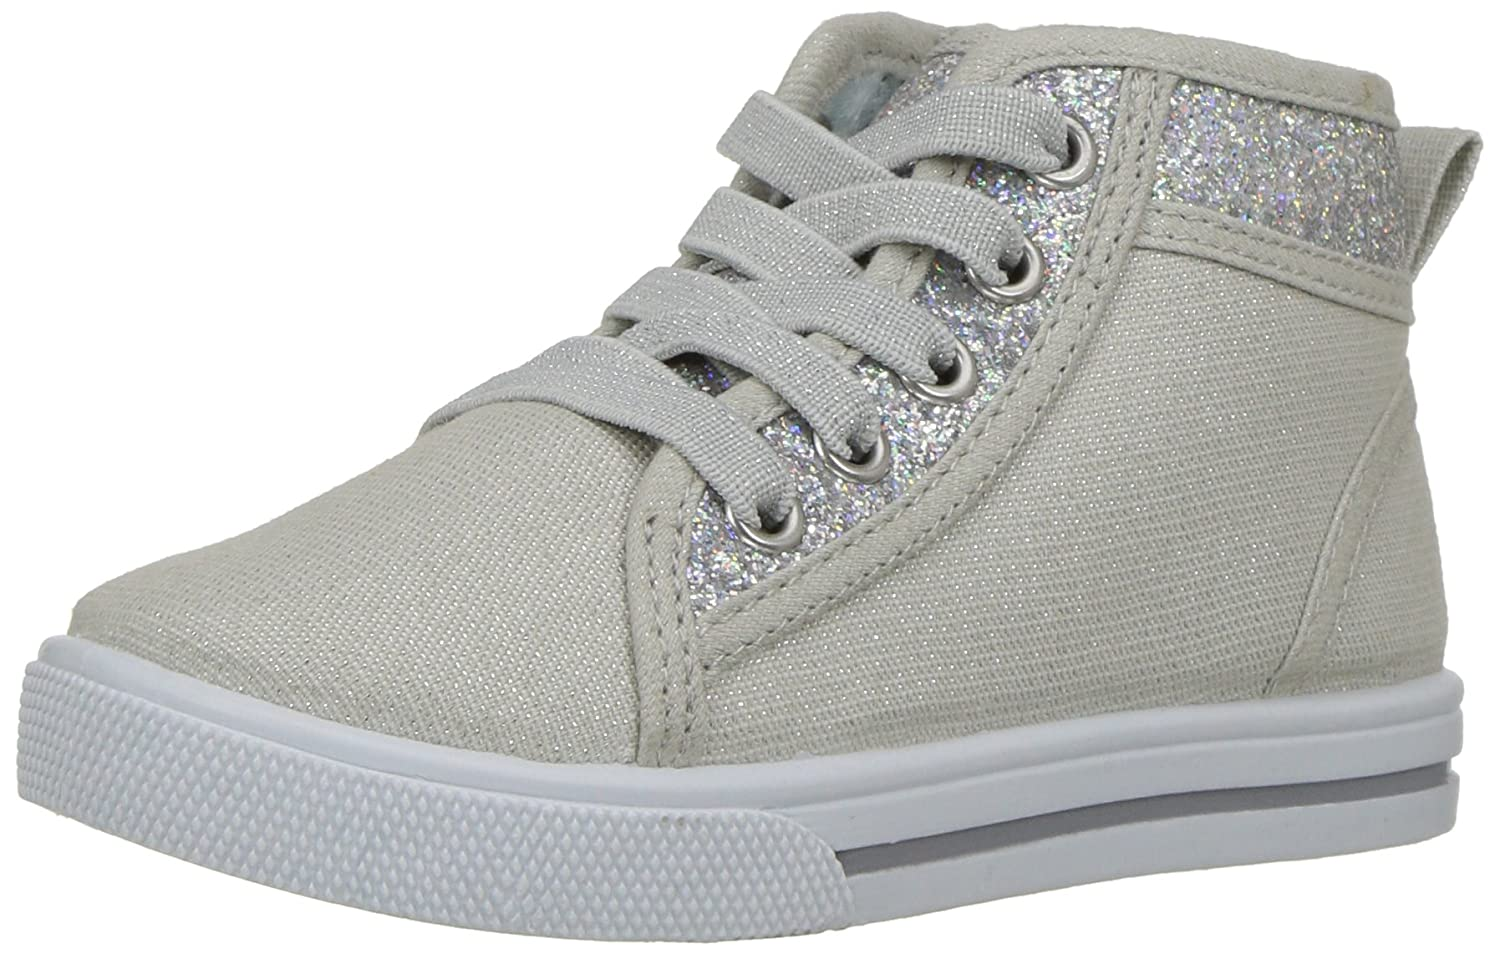 OshKosh B'Gosh Kids Babette Girl's Glitter High-Top Sneaker OshKosh B'Gosh